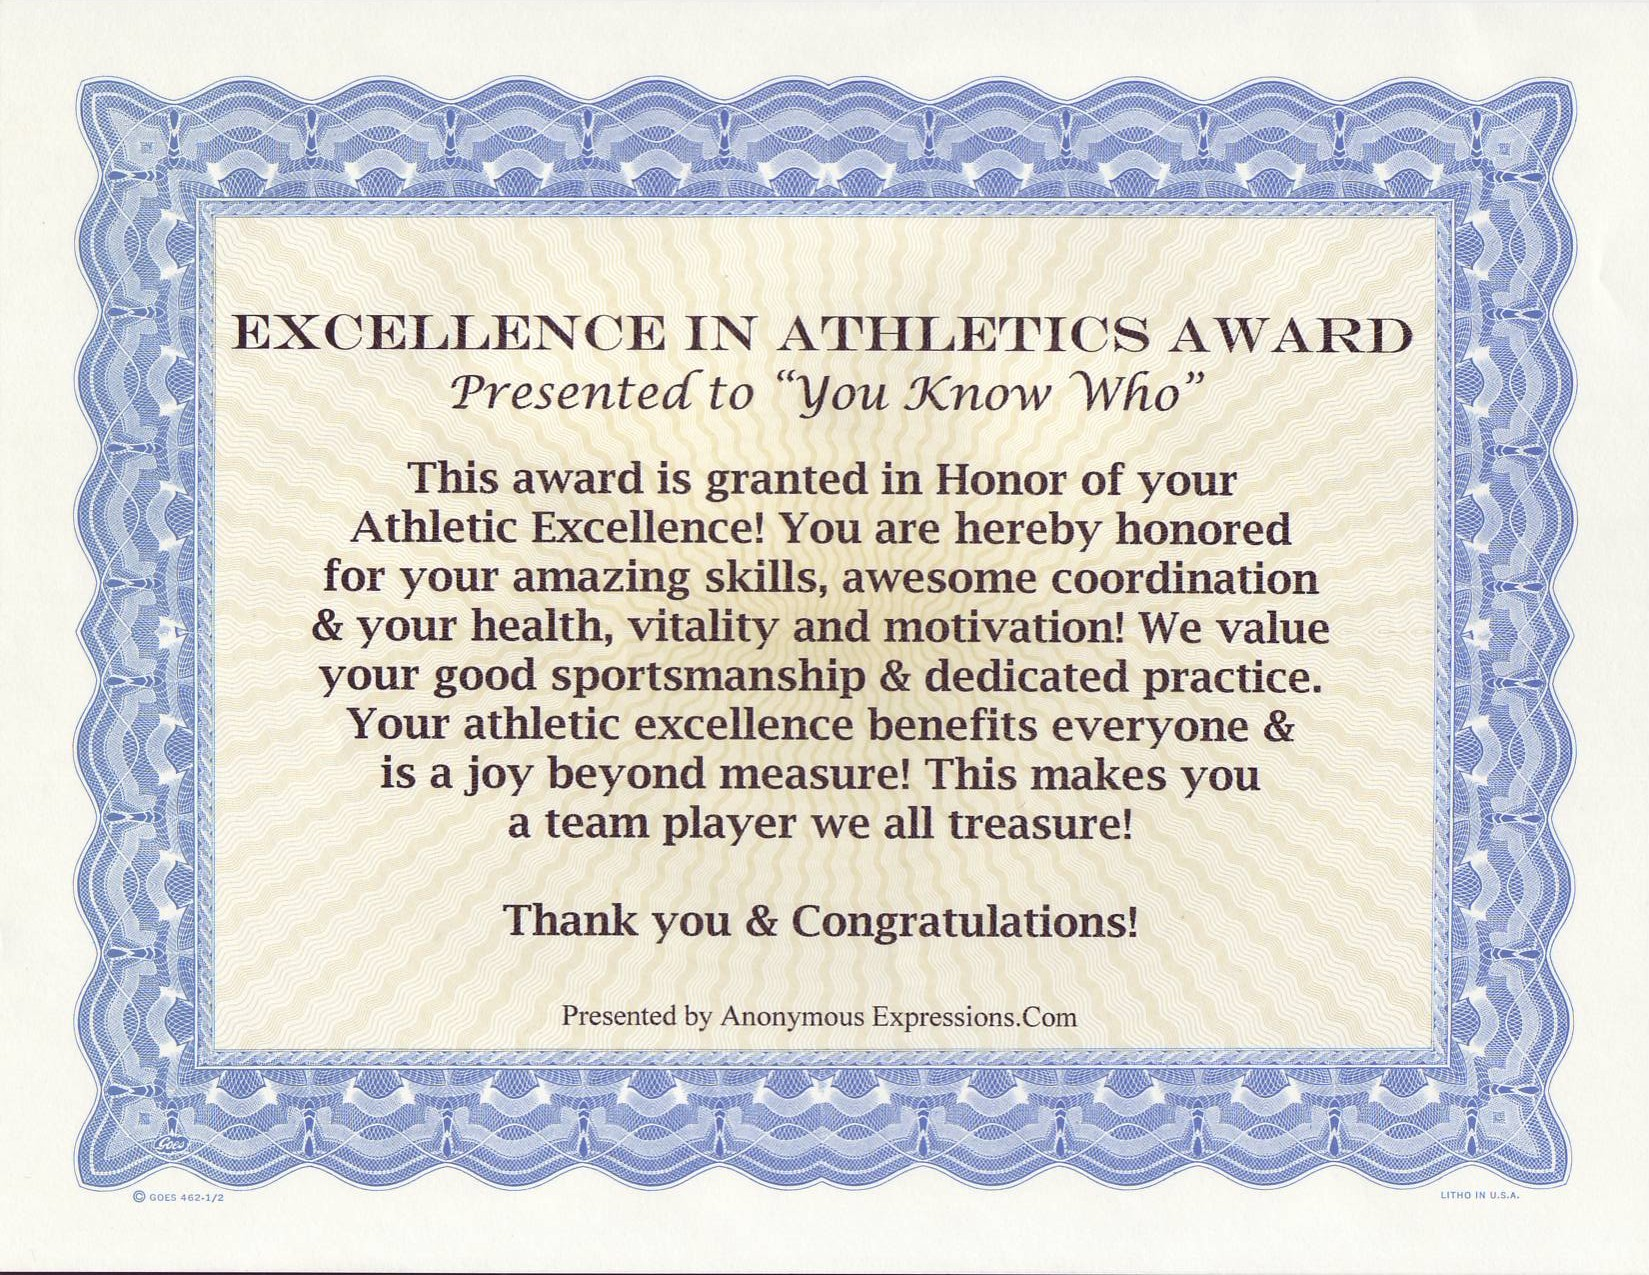 Excellence in Athletics Award